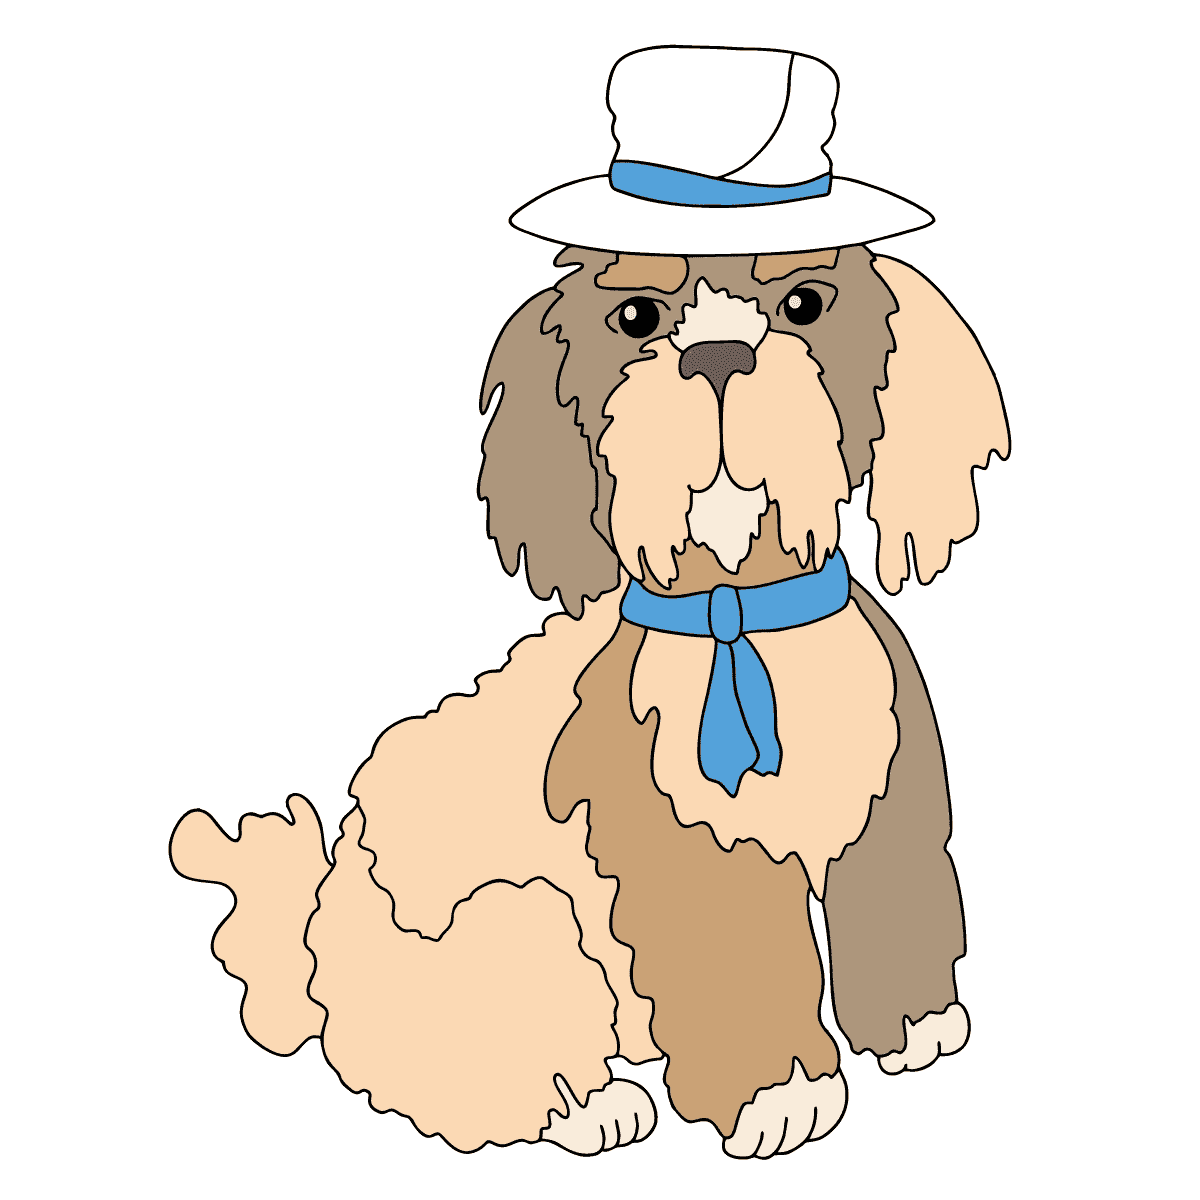 Coloring Page - A Dog in a Beautiful Hat